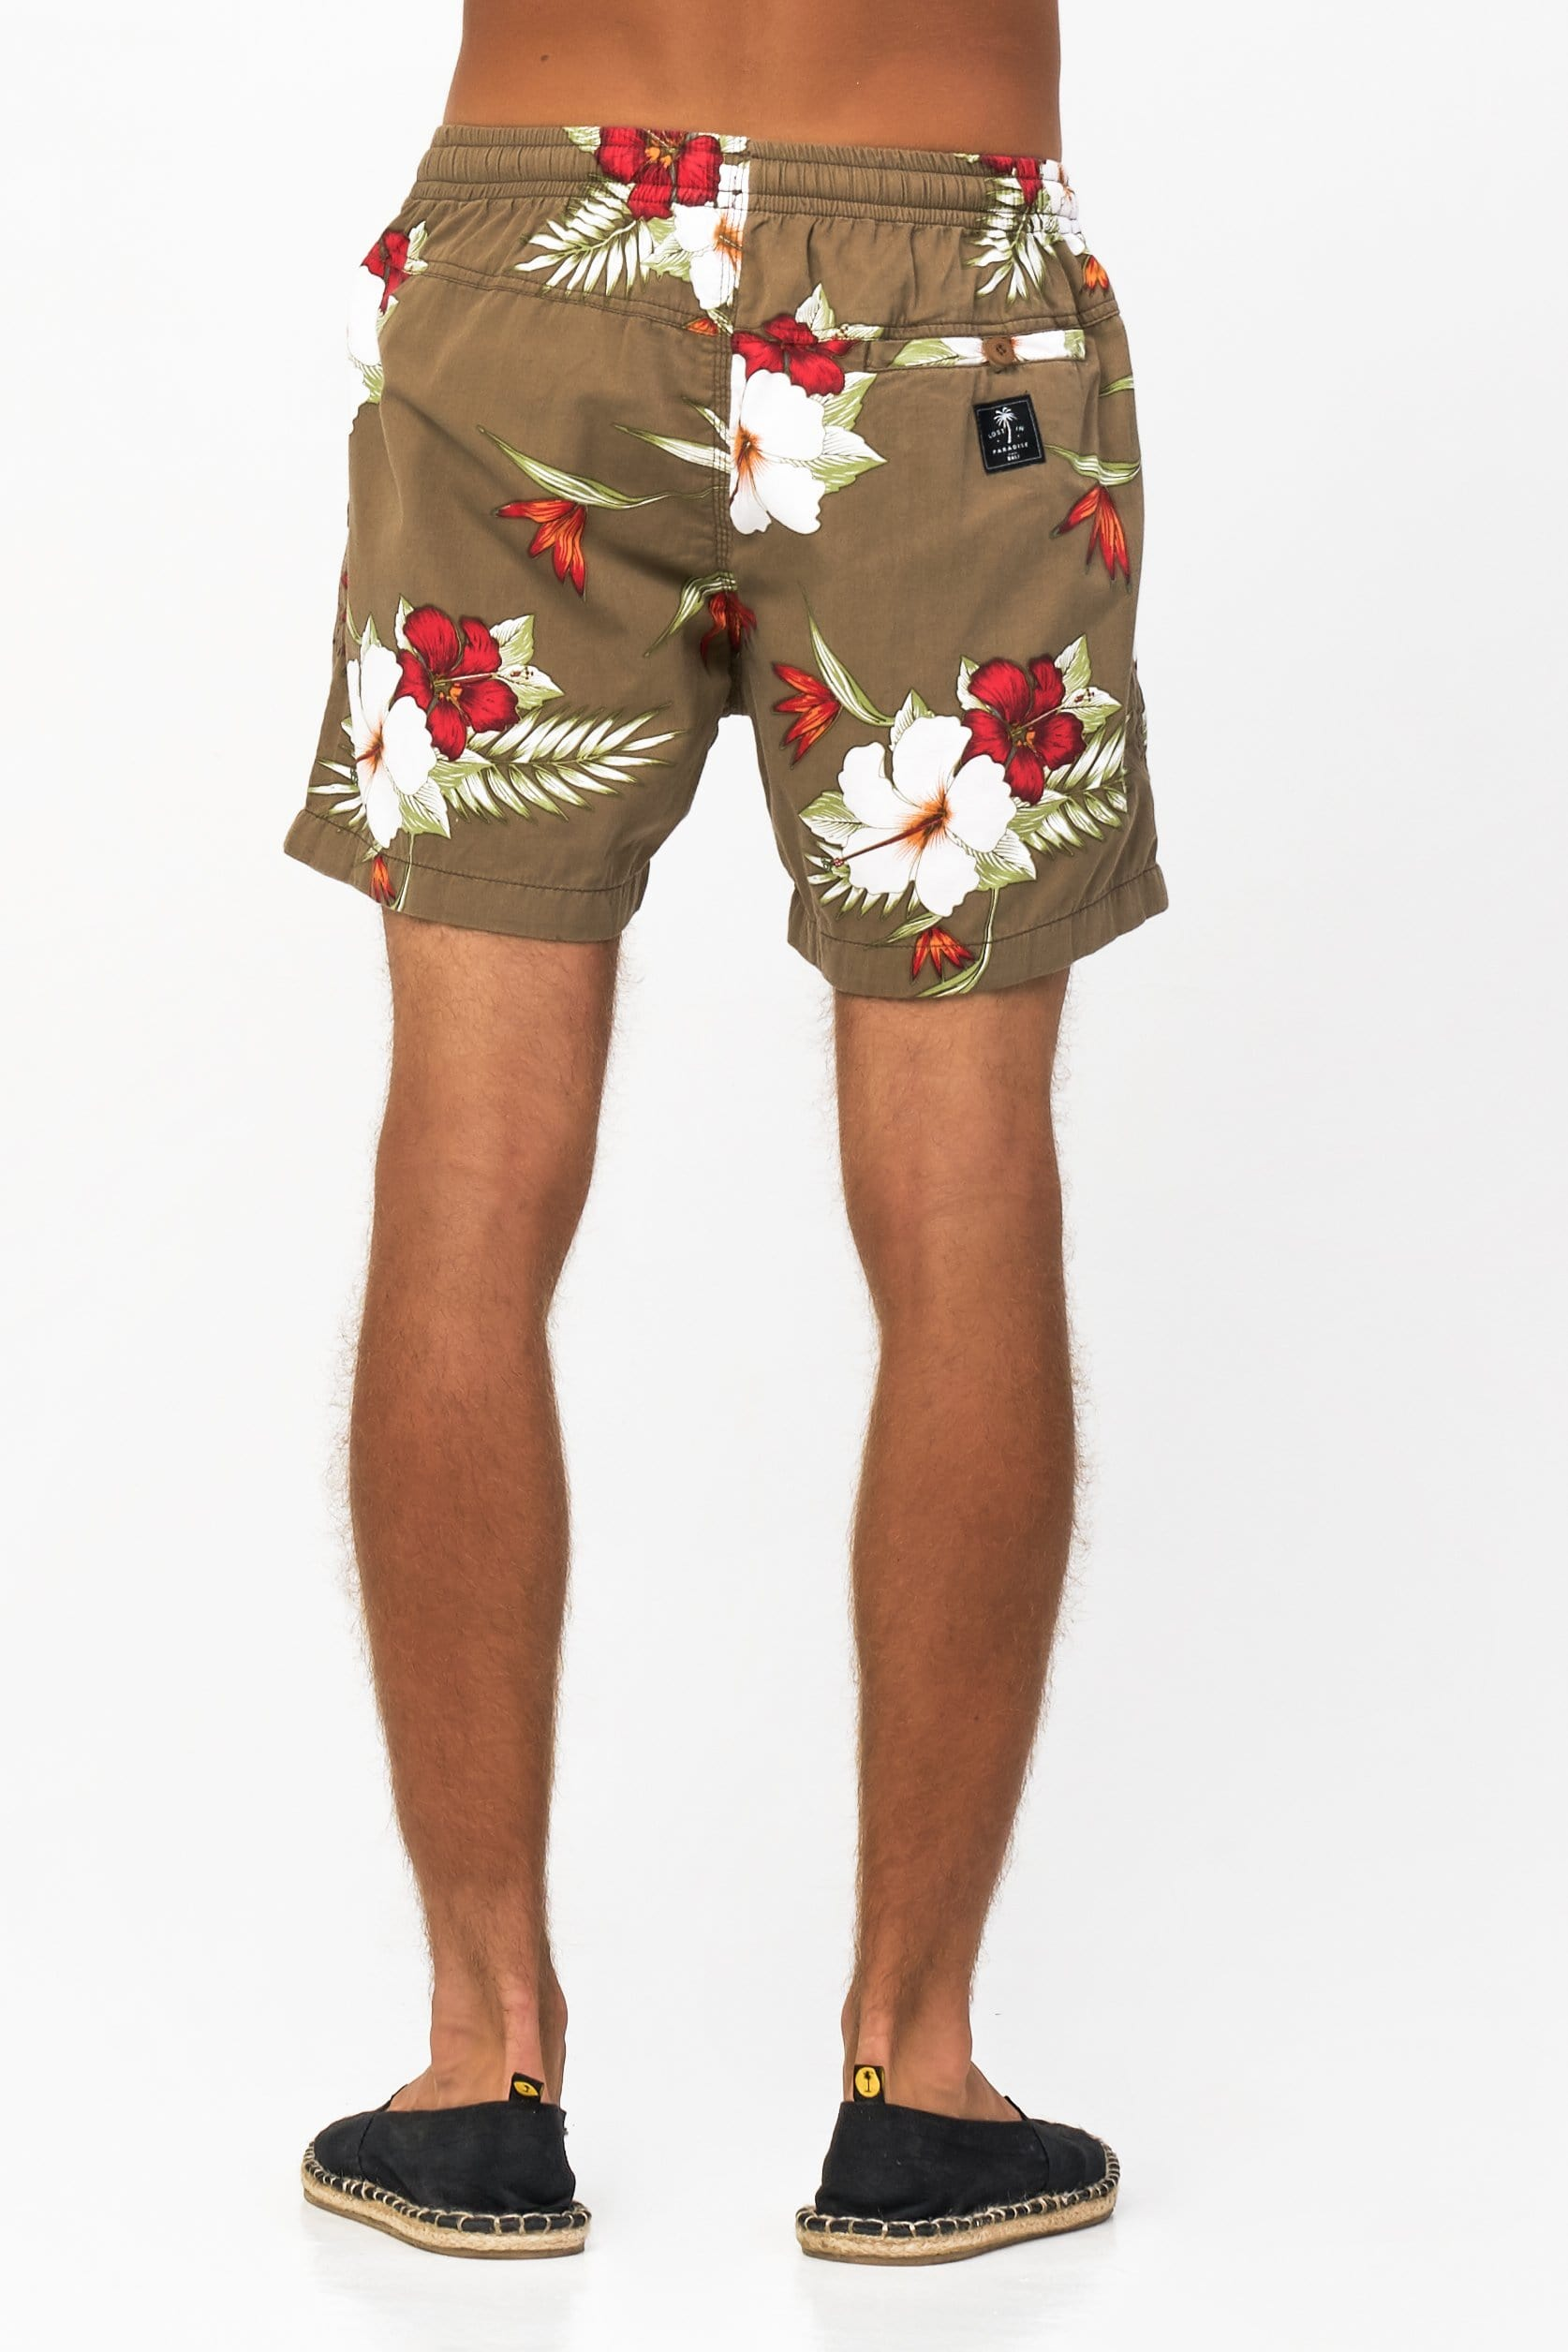 Hibiscus Short - Man Short - LOST IN PARADISE